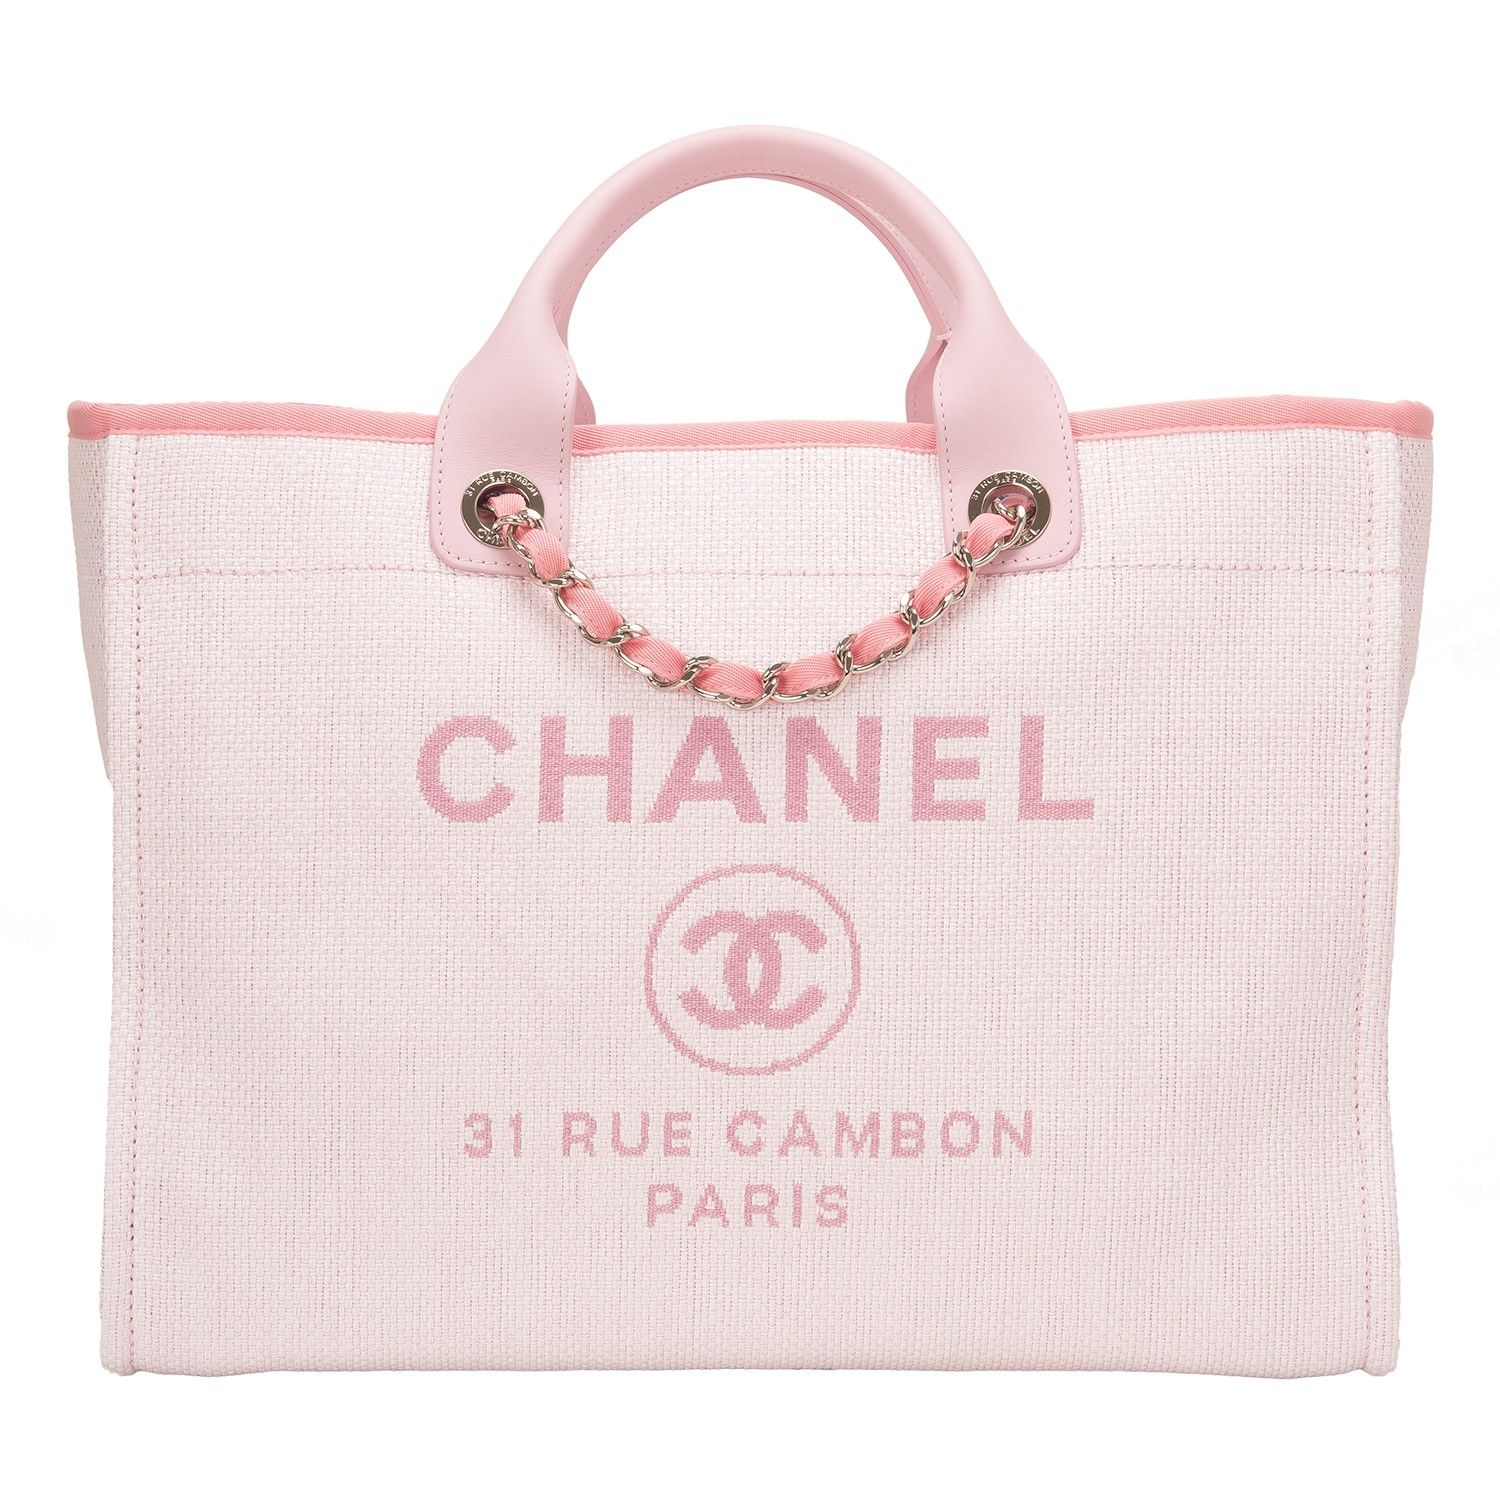 10f8abb622f0 Chanel Pink Deauville canvas tote